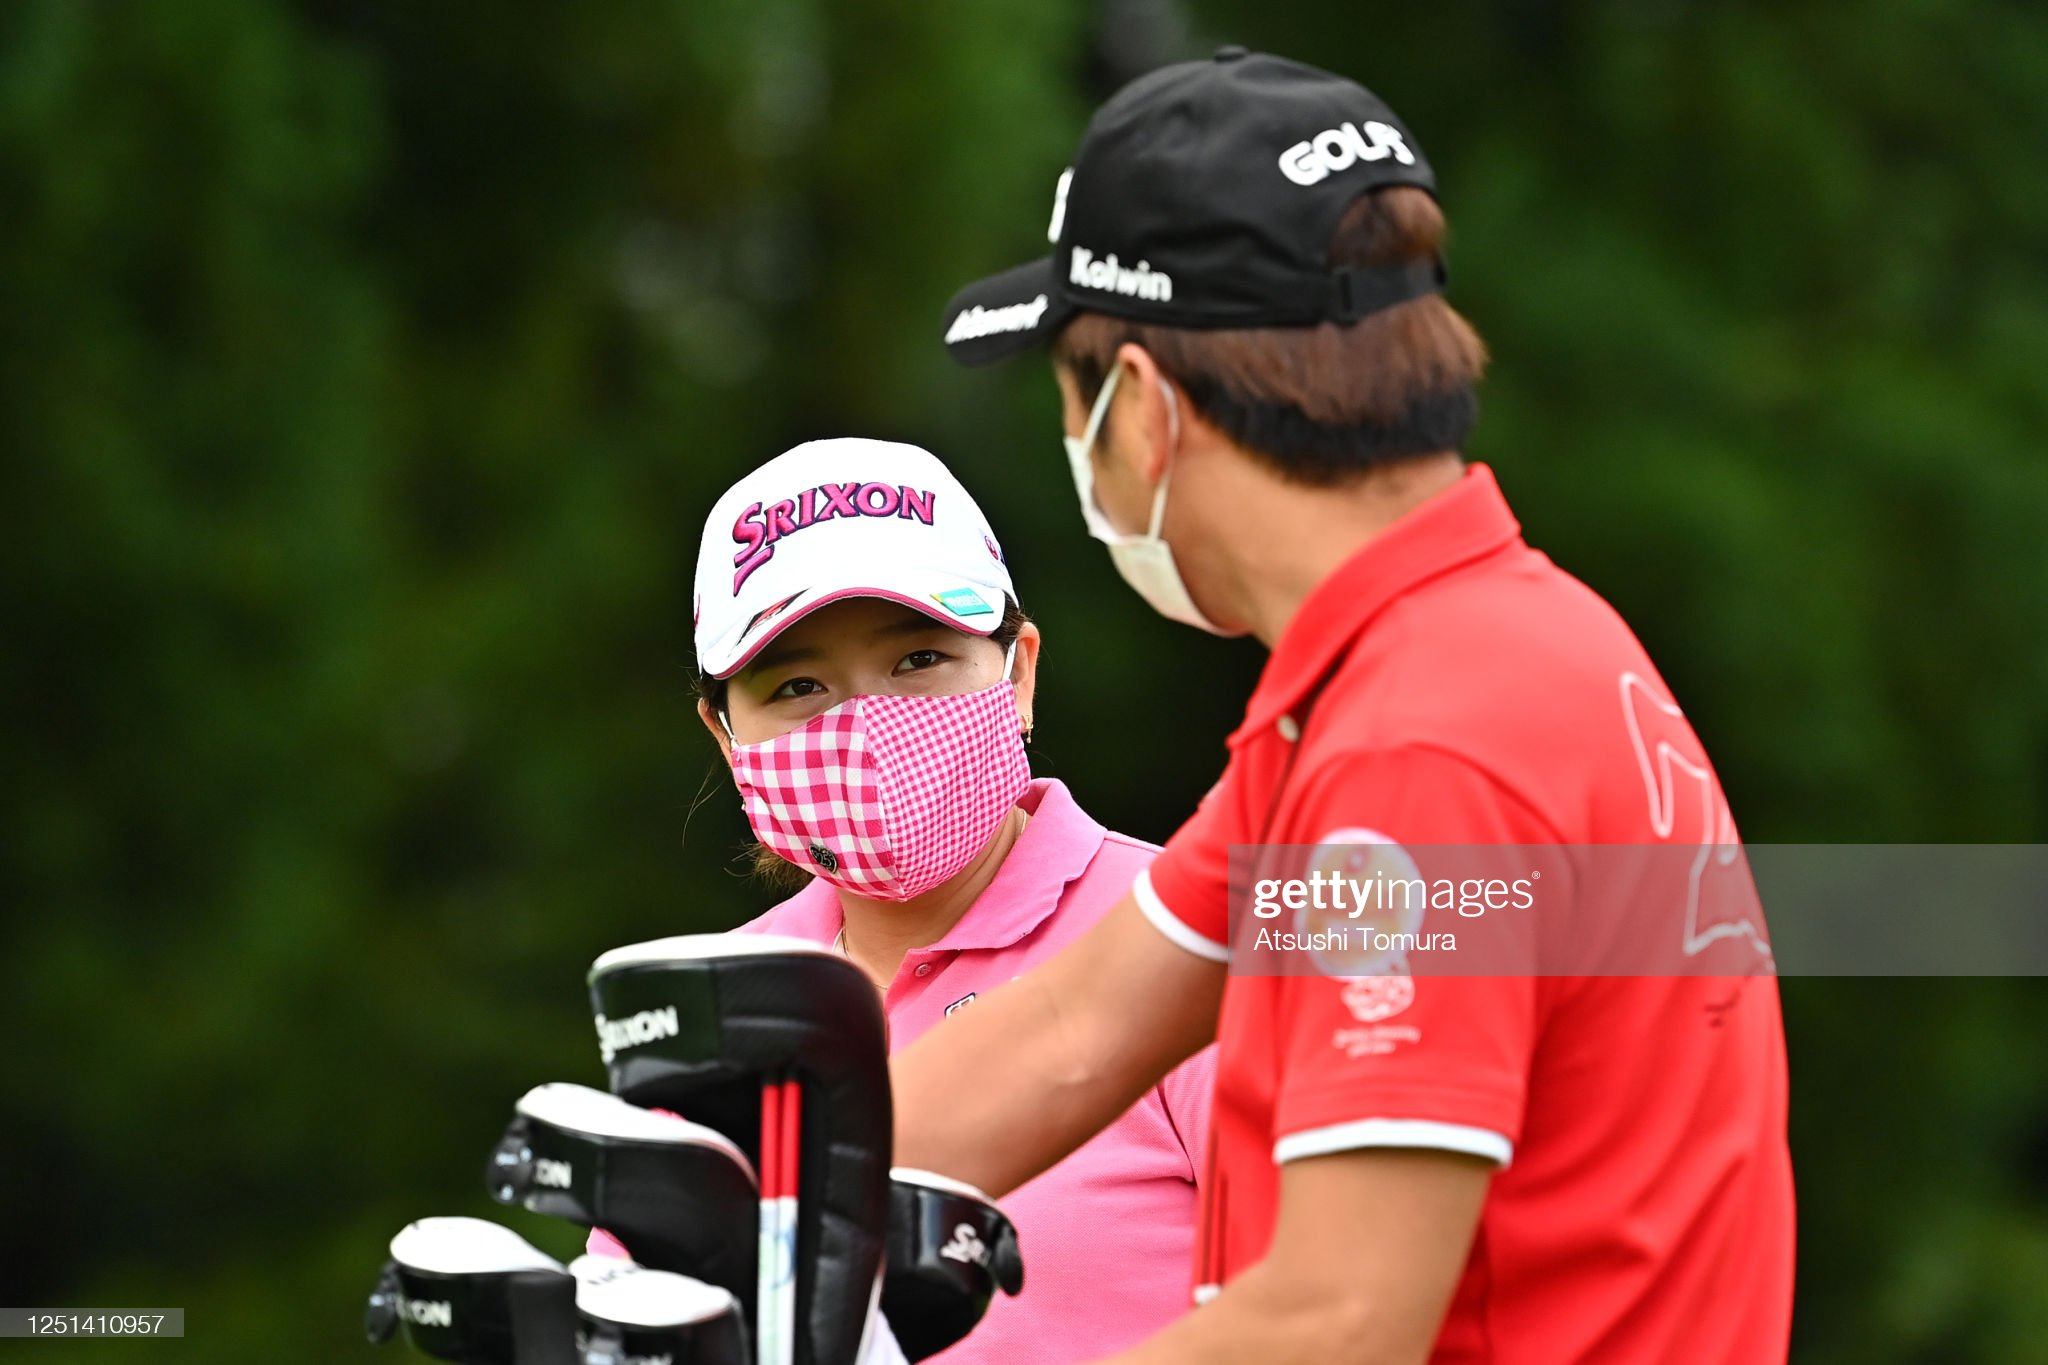 https://media.gettyimages.com/photos/minami-katsu-of-japan-talks-with-her-caddie-on-the-1st-hole-during-picture-id1251410957?s=2048x2048